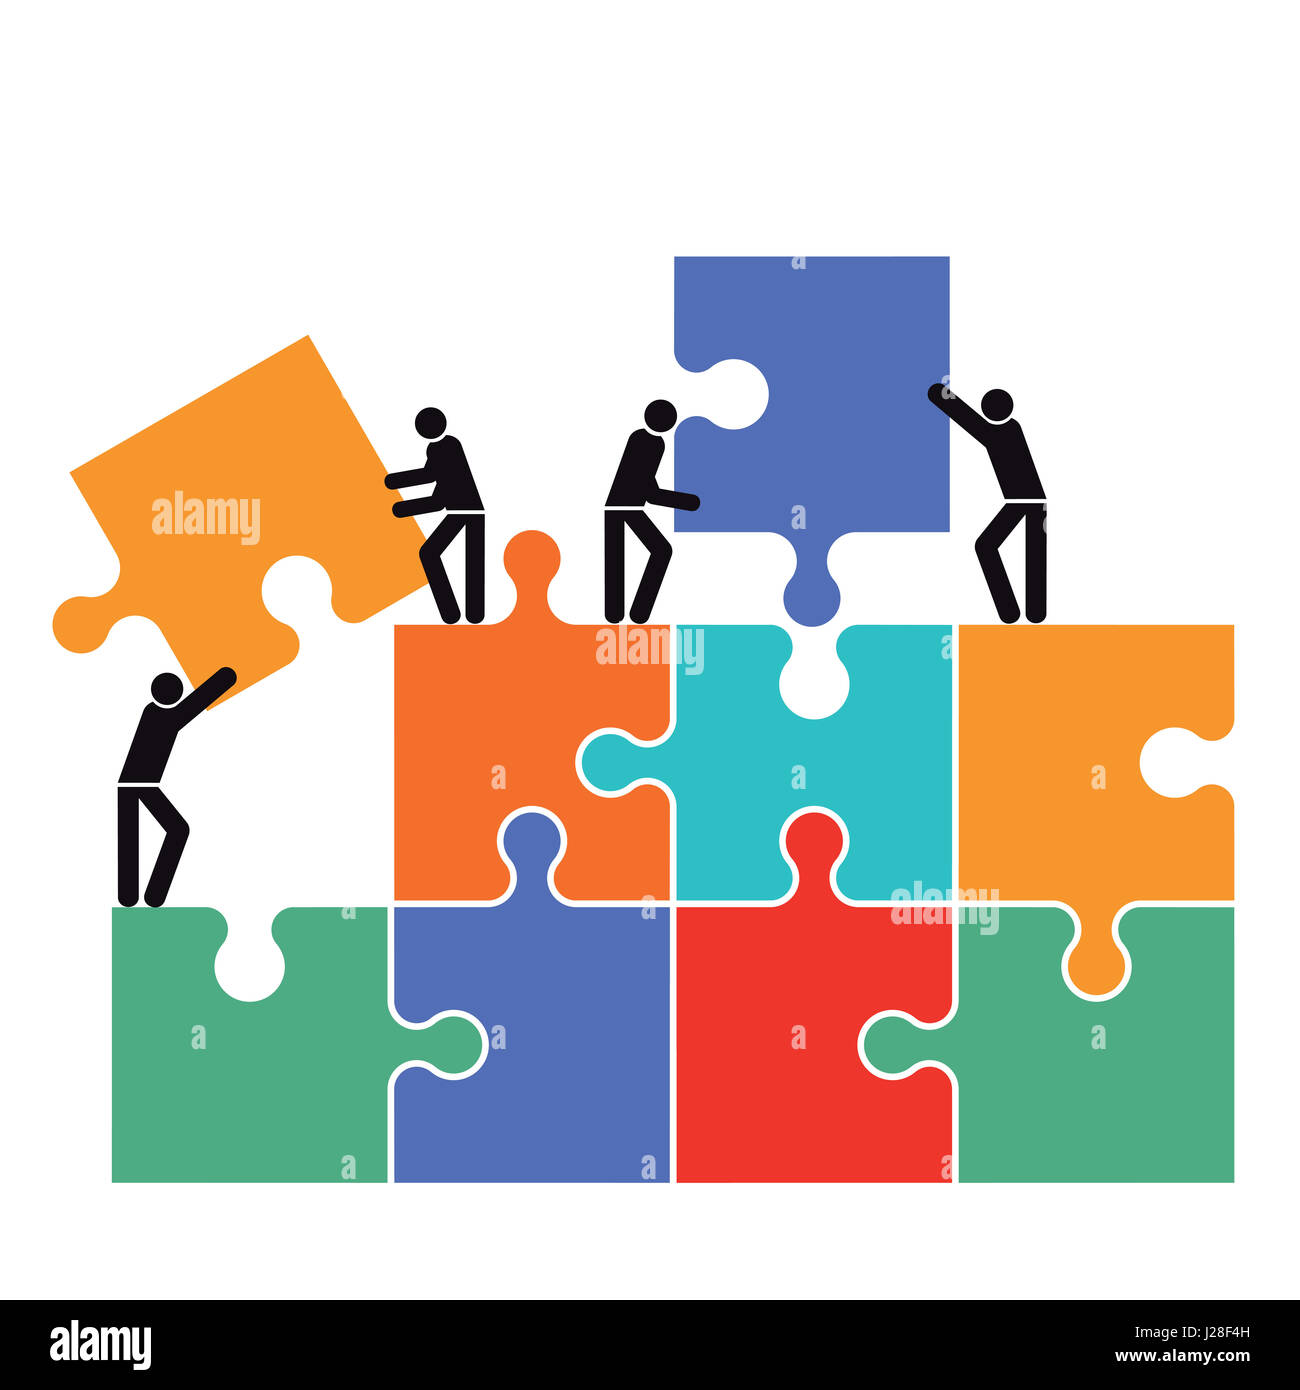 Teamwork Team Group Gear Partnership Cooperation Stock ...  |Group Cooperation